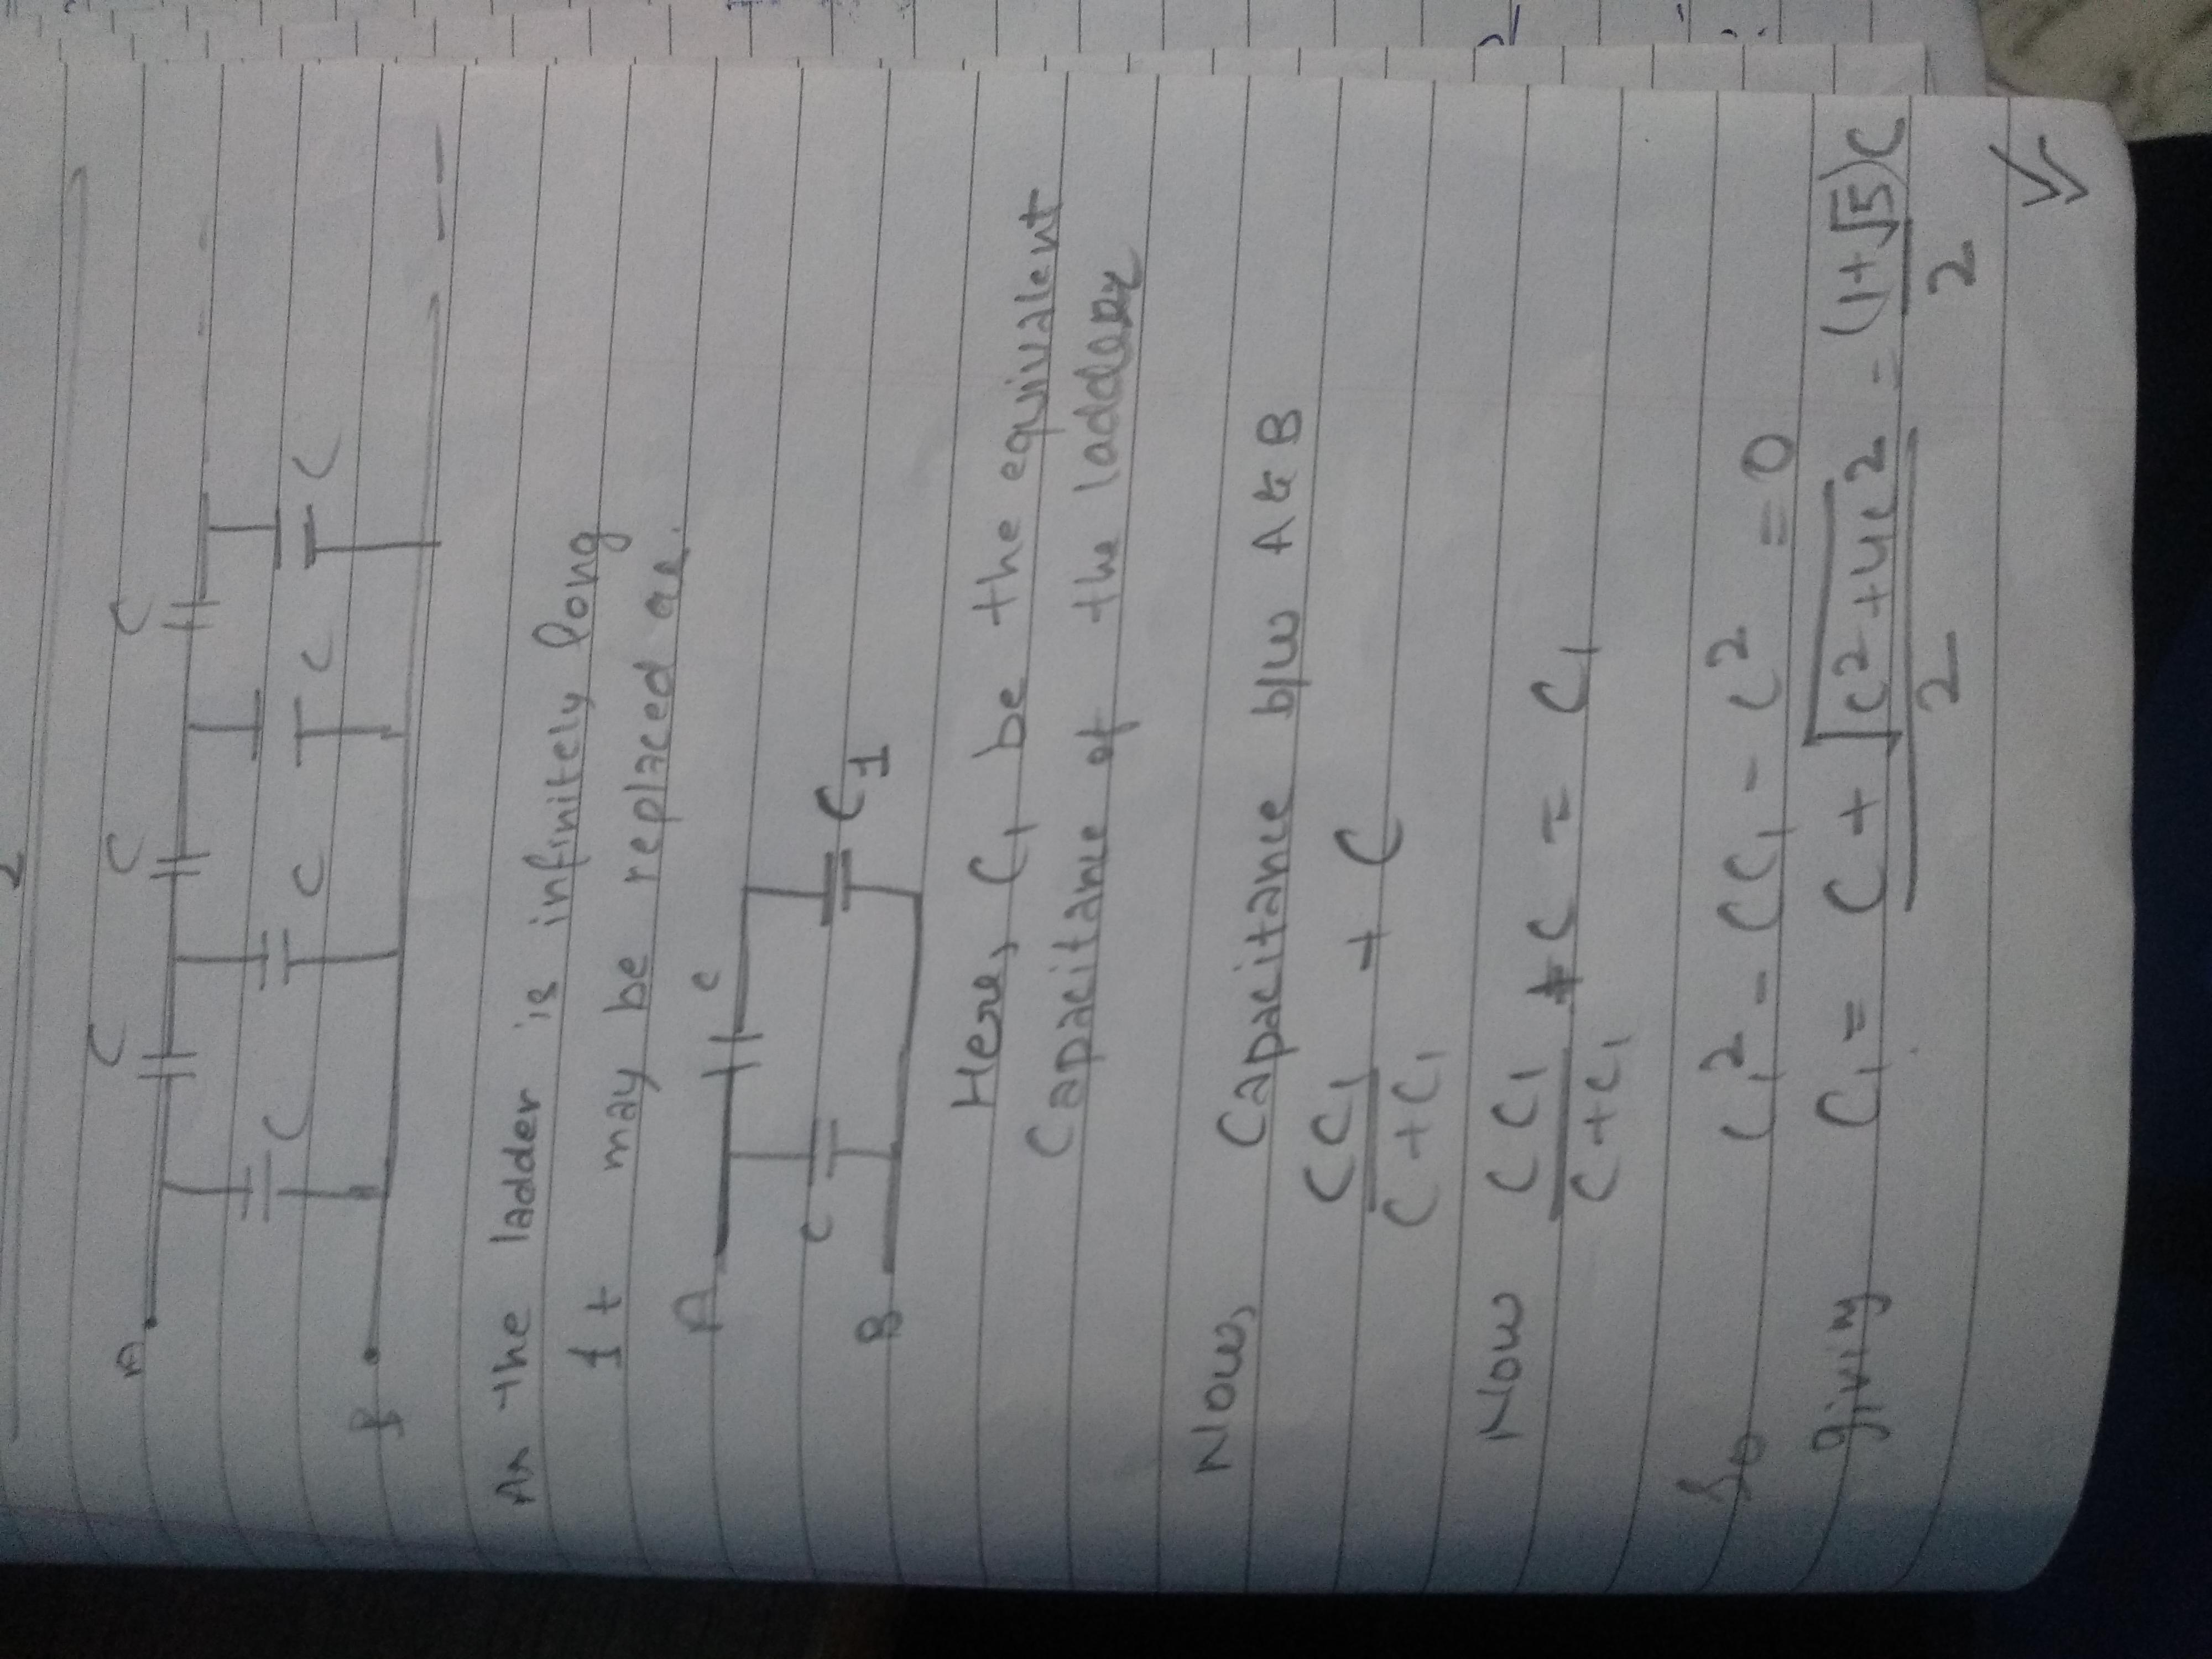 How To Calculate The Equivalent Capacitance Of An Infinite